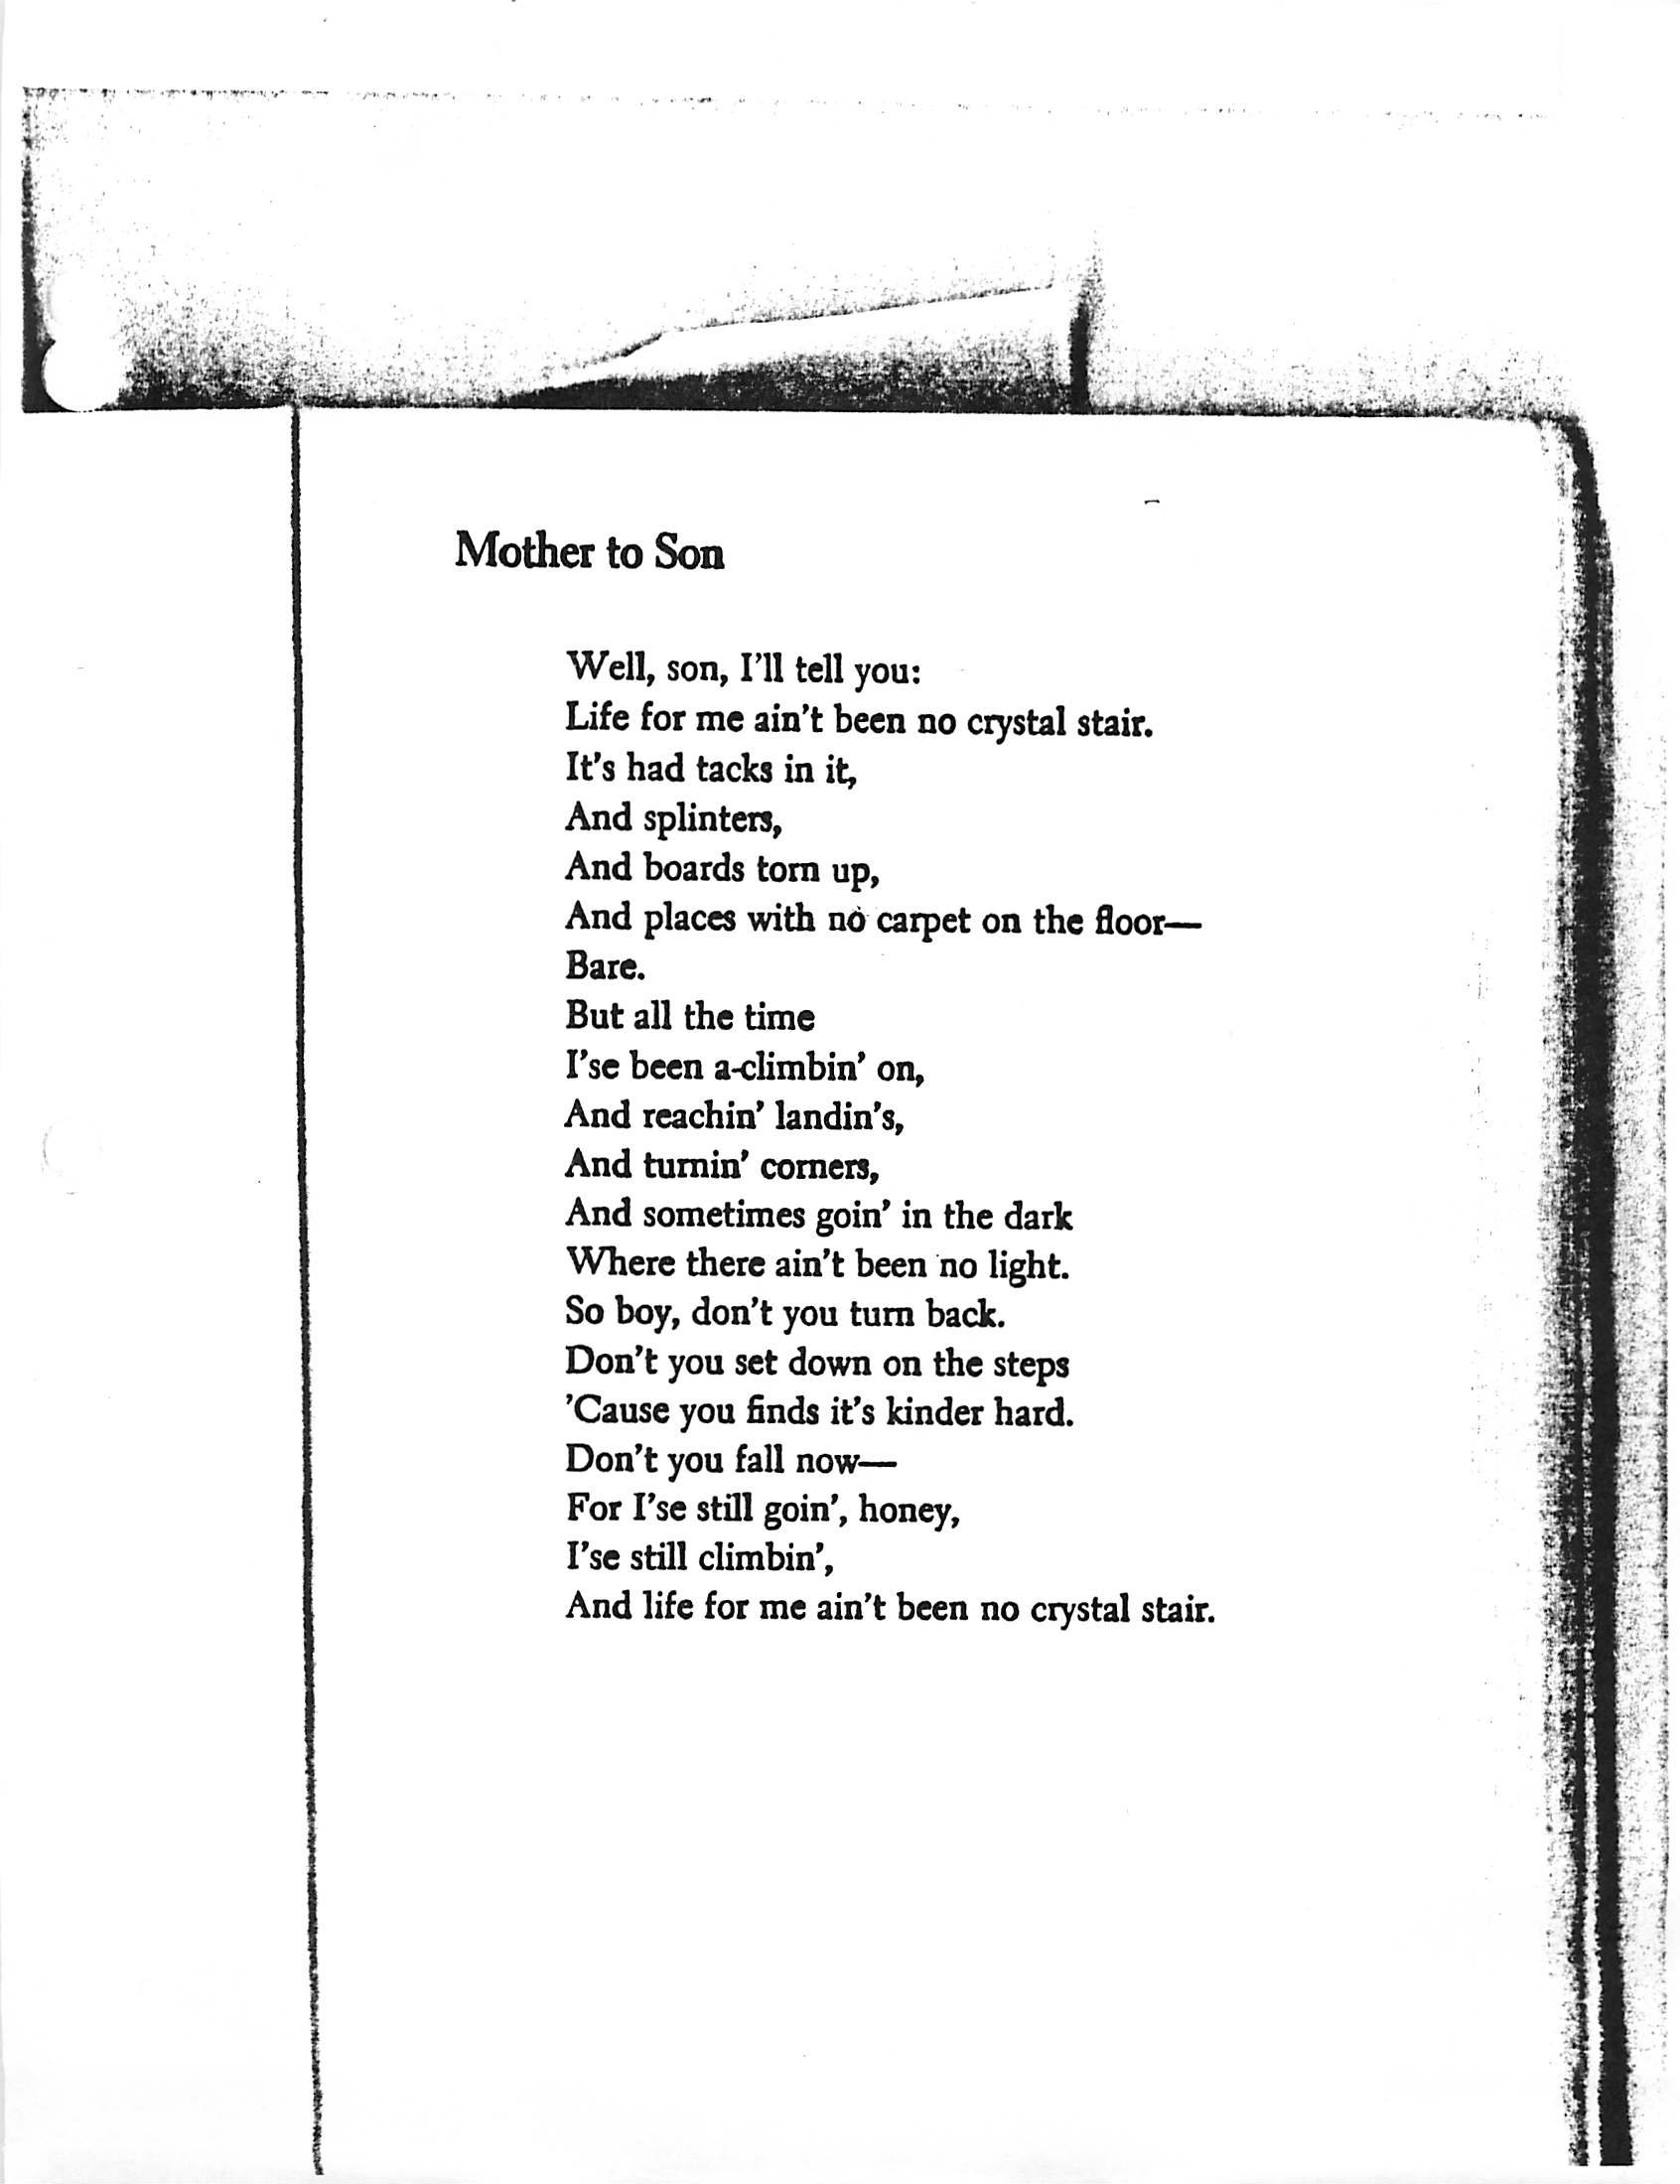 an analysis of the monologue in langston hughes poem mother to son The negro mother by langston hughes children i come back today to tell you a story of the long dark way that i had to climb that i had to know in order that the race might live and grow page.